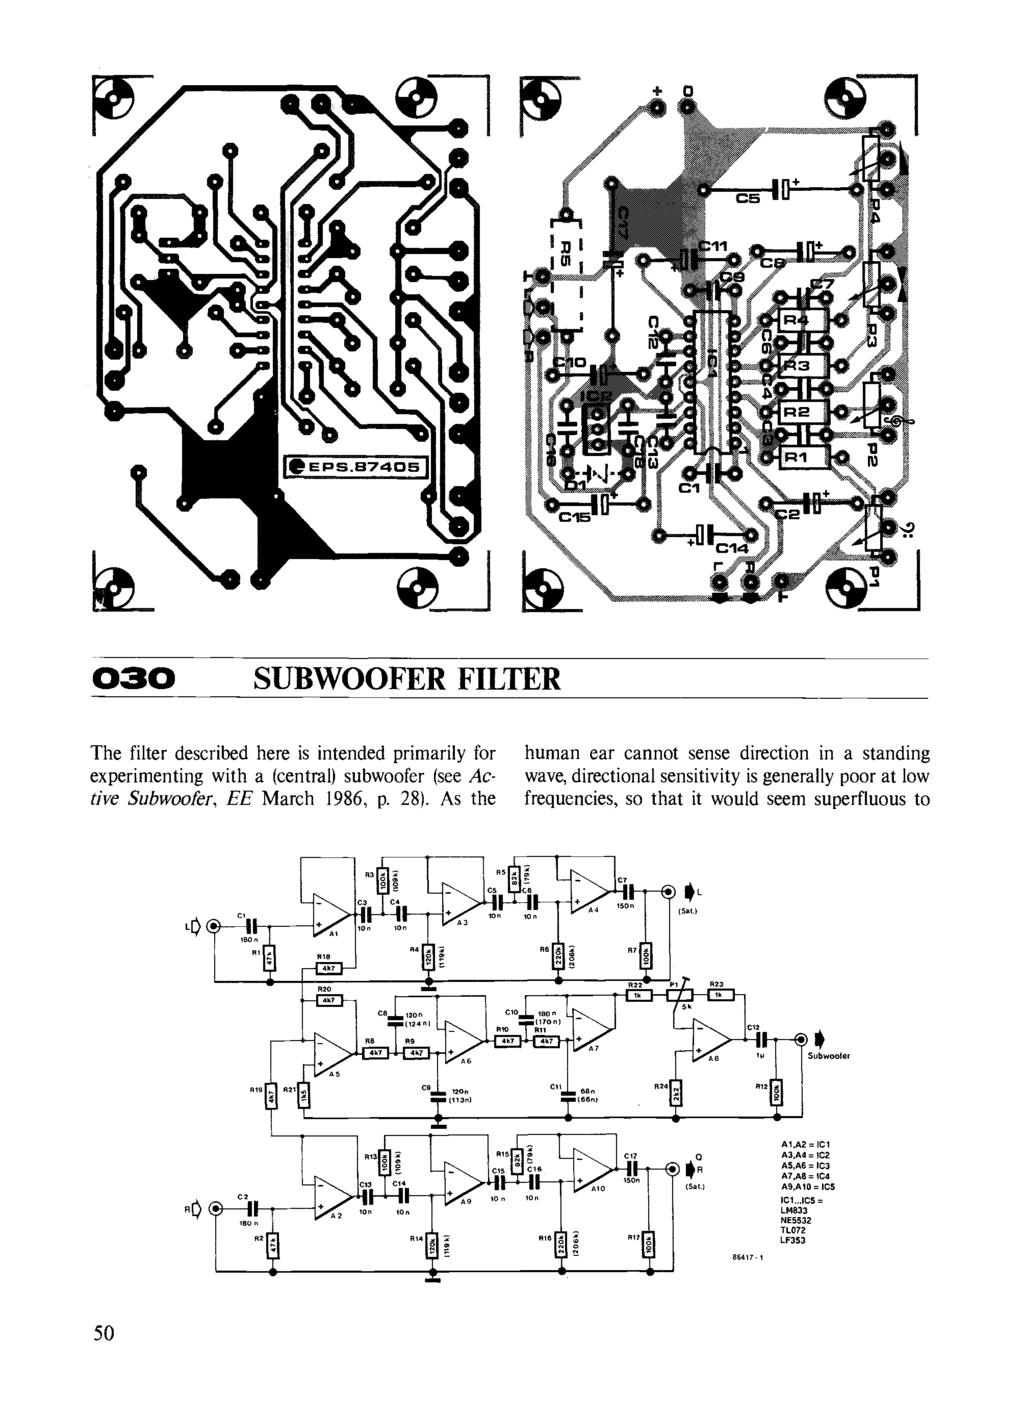 Circuits Elektor Electronics Pdf 12v Piezo Siren Circuit Ear Piercing Sound E Eps 8745 3 Subwoofer Filter The Described Here Is Intended Primarily For Experimenting With